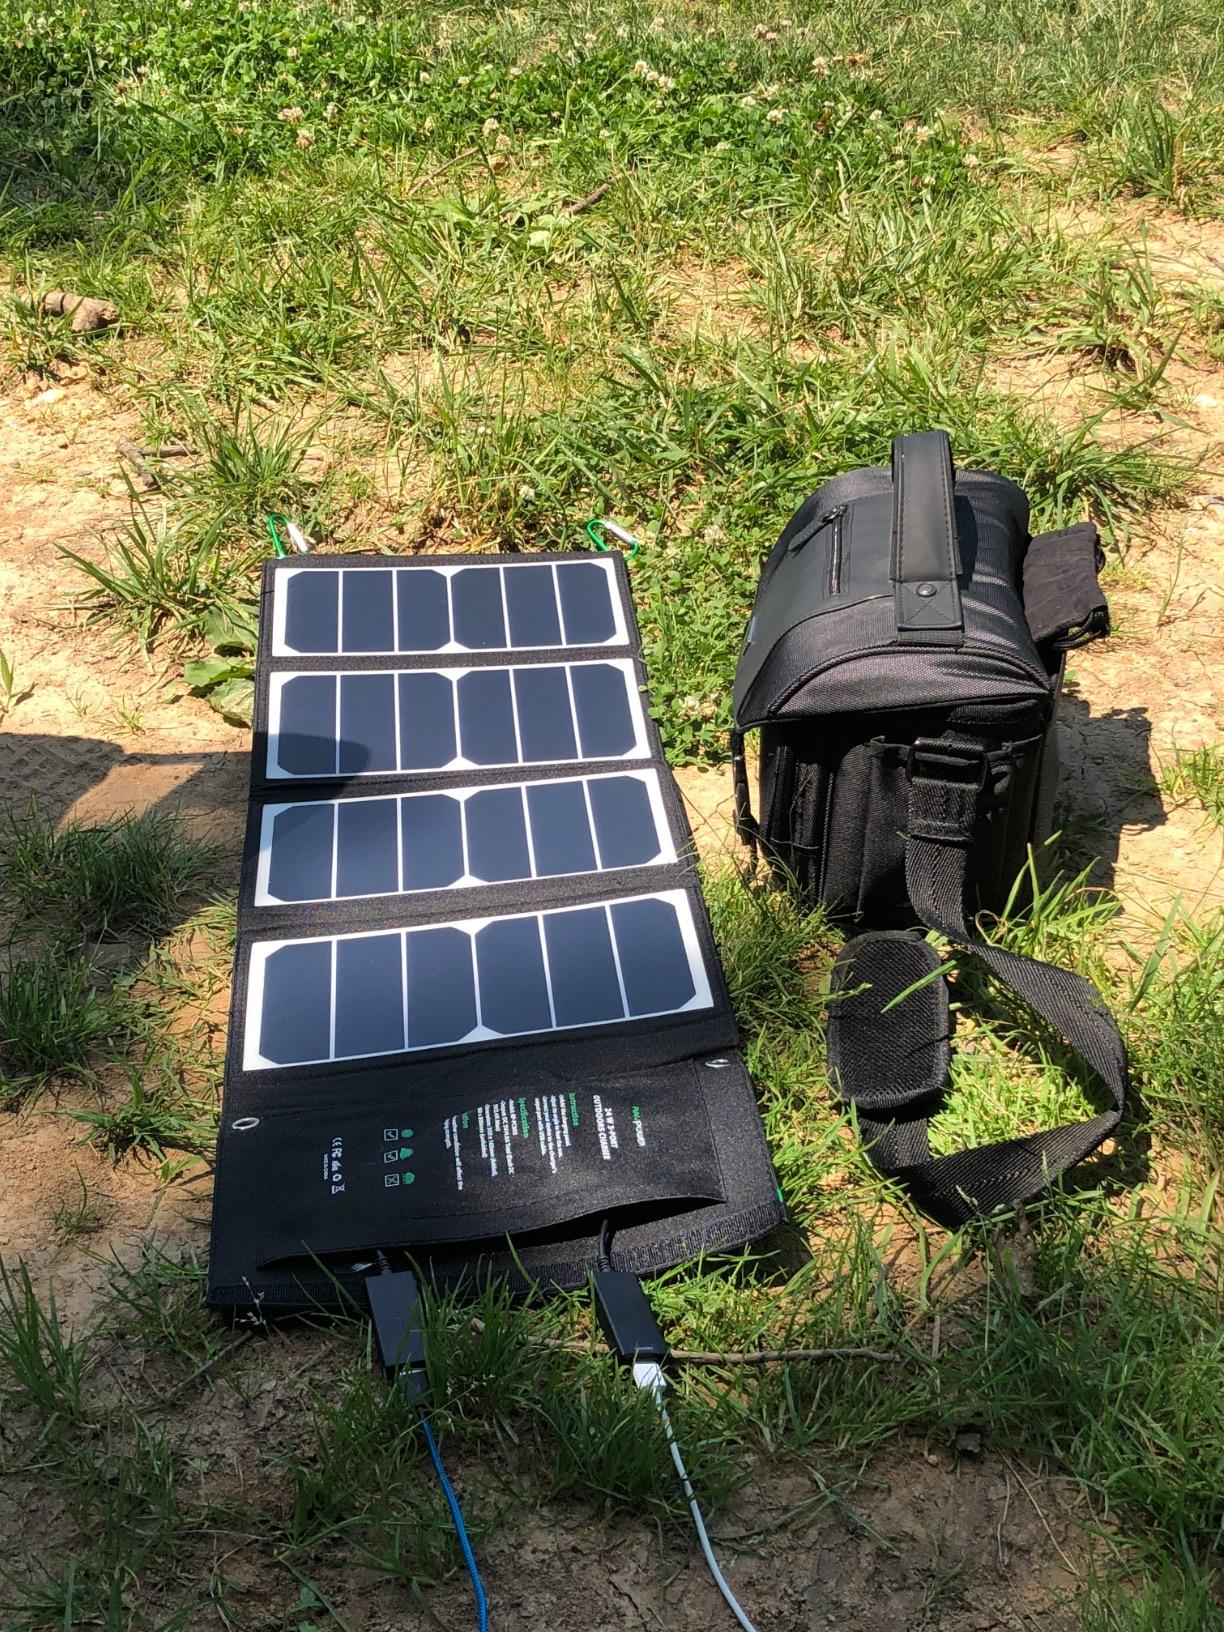 I decided to purchase the RAVPower 24W solar panel. I could not be happier. Super durable and very responsive. I highly recommend this for anyone